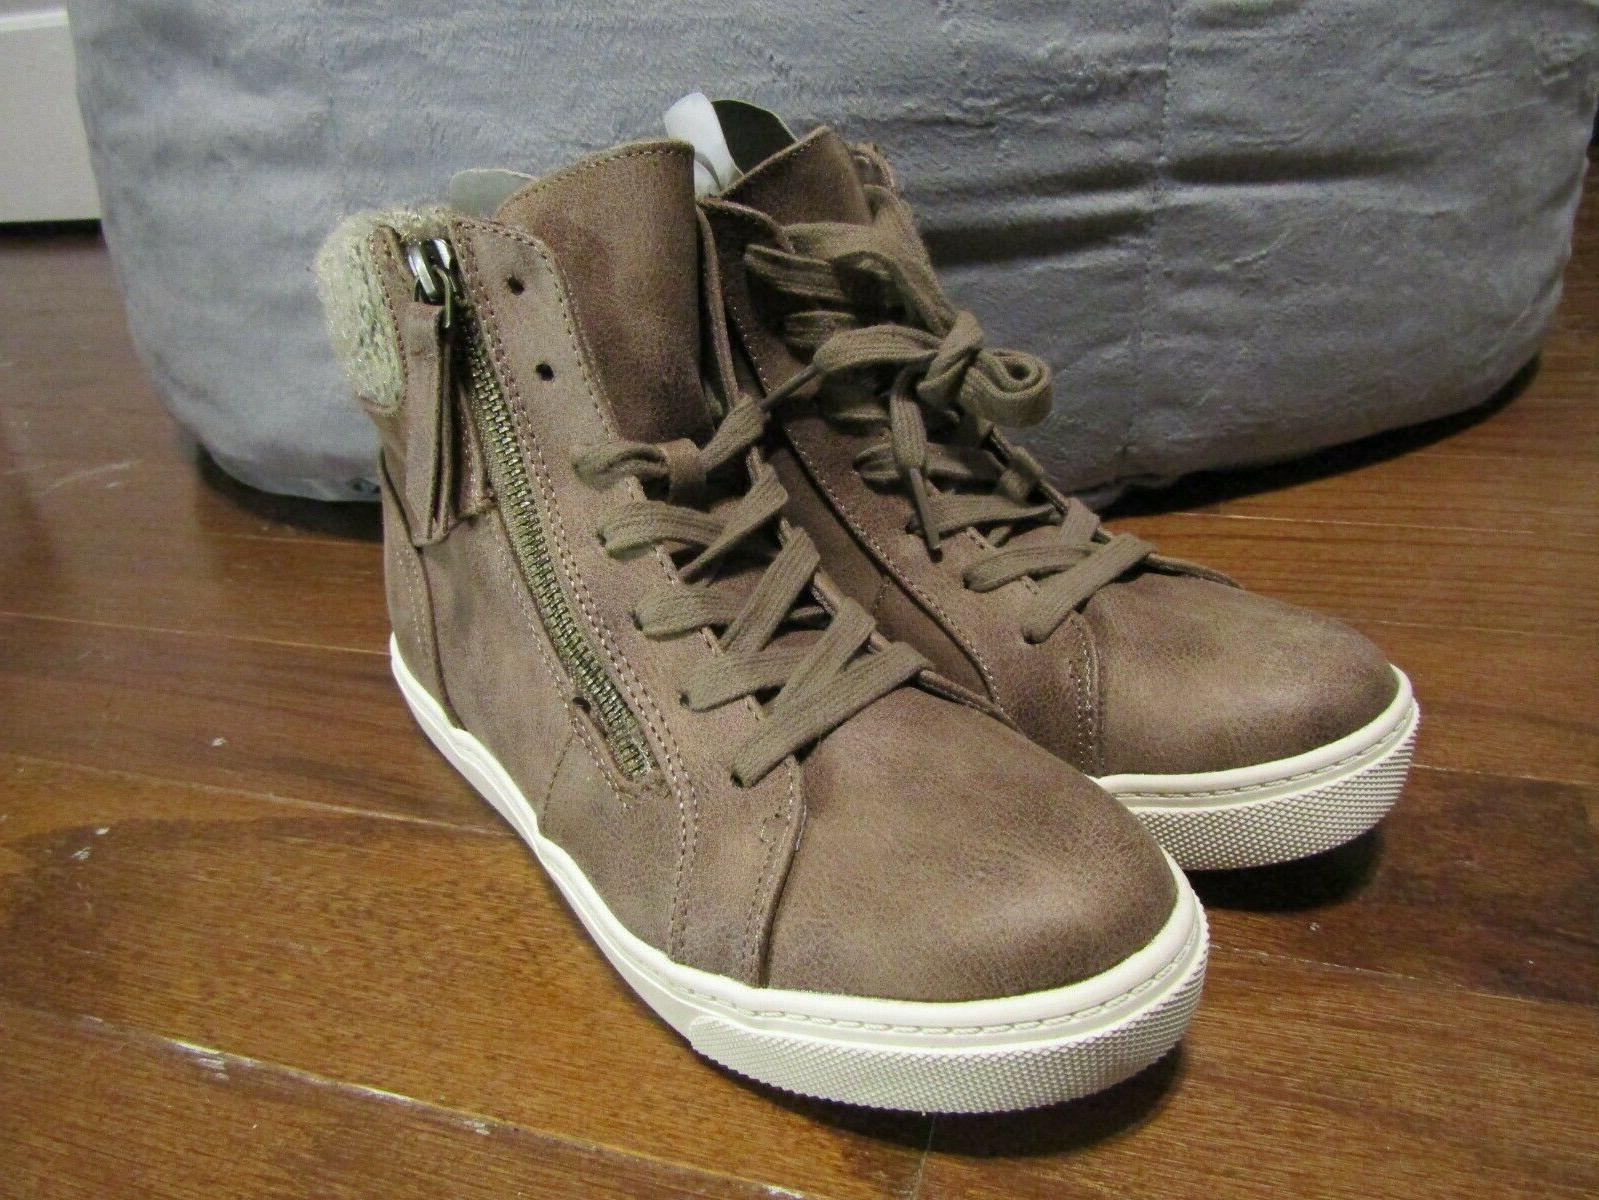 brand taupe hi top casual shoes boots